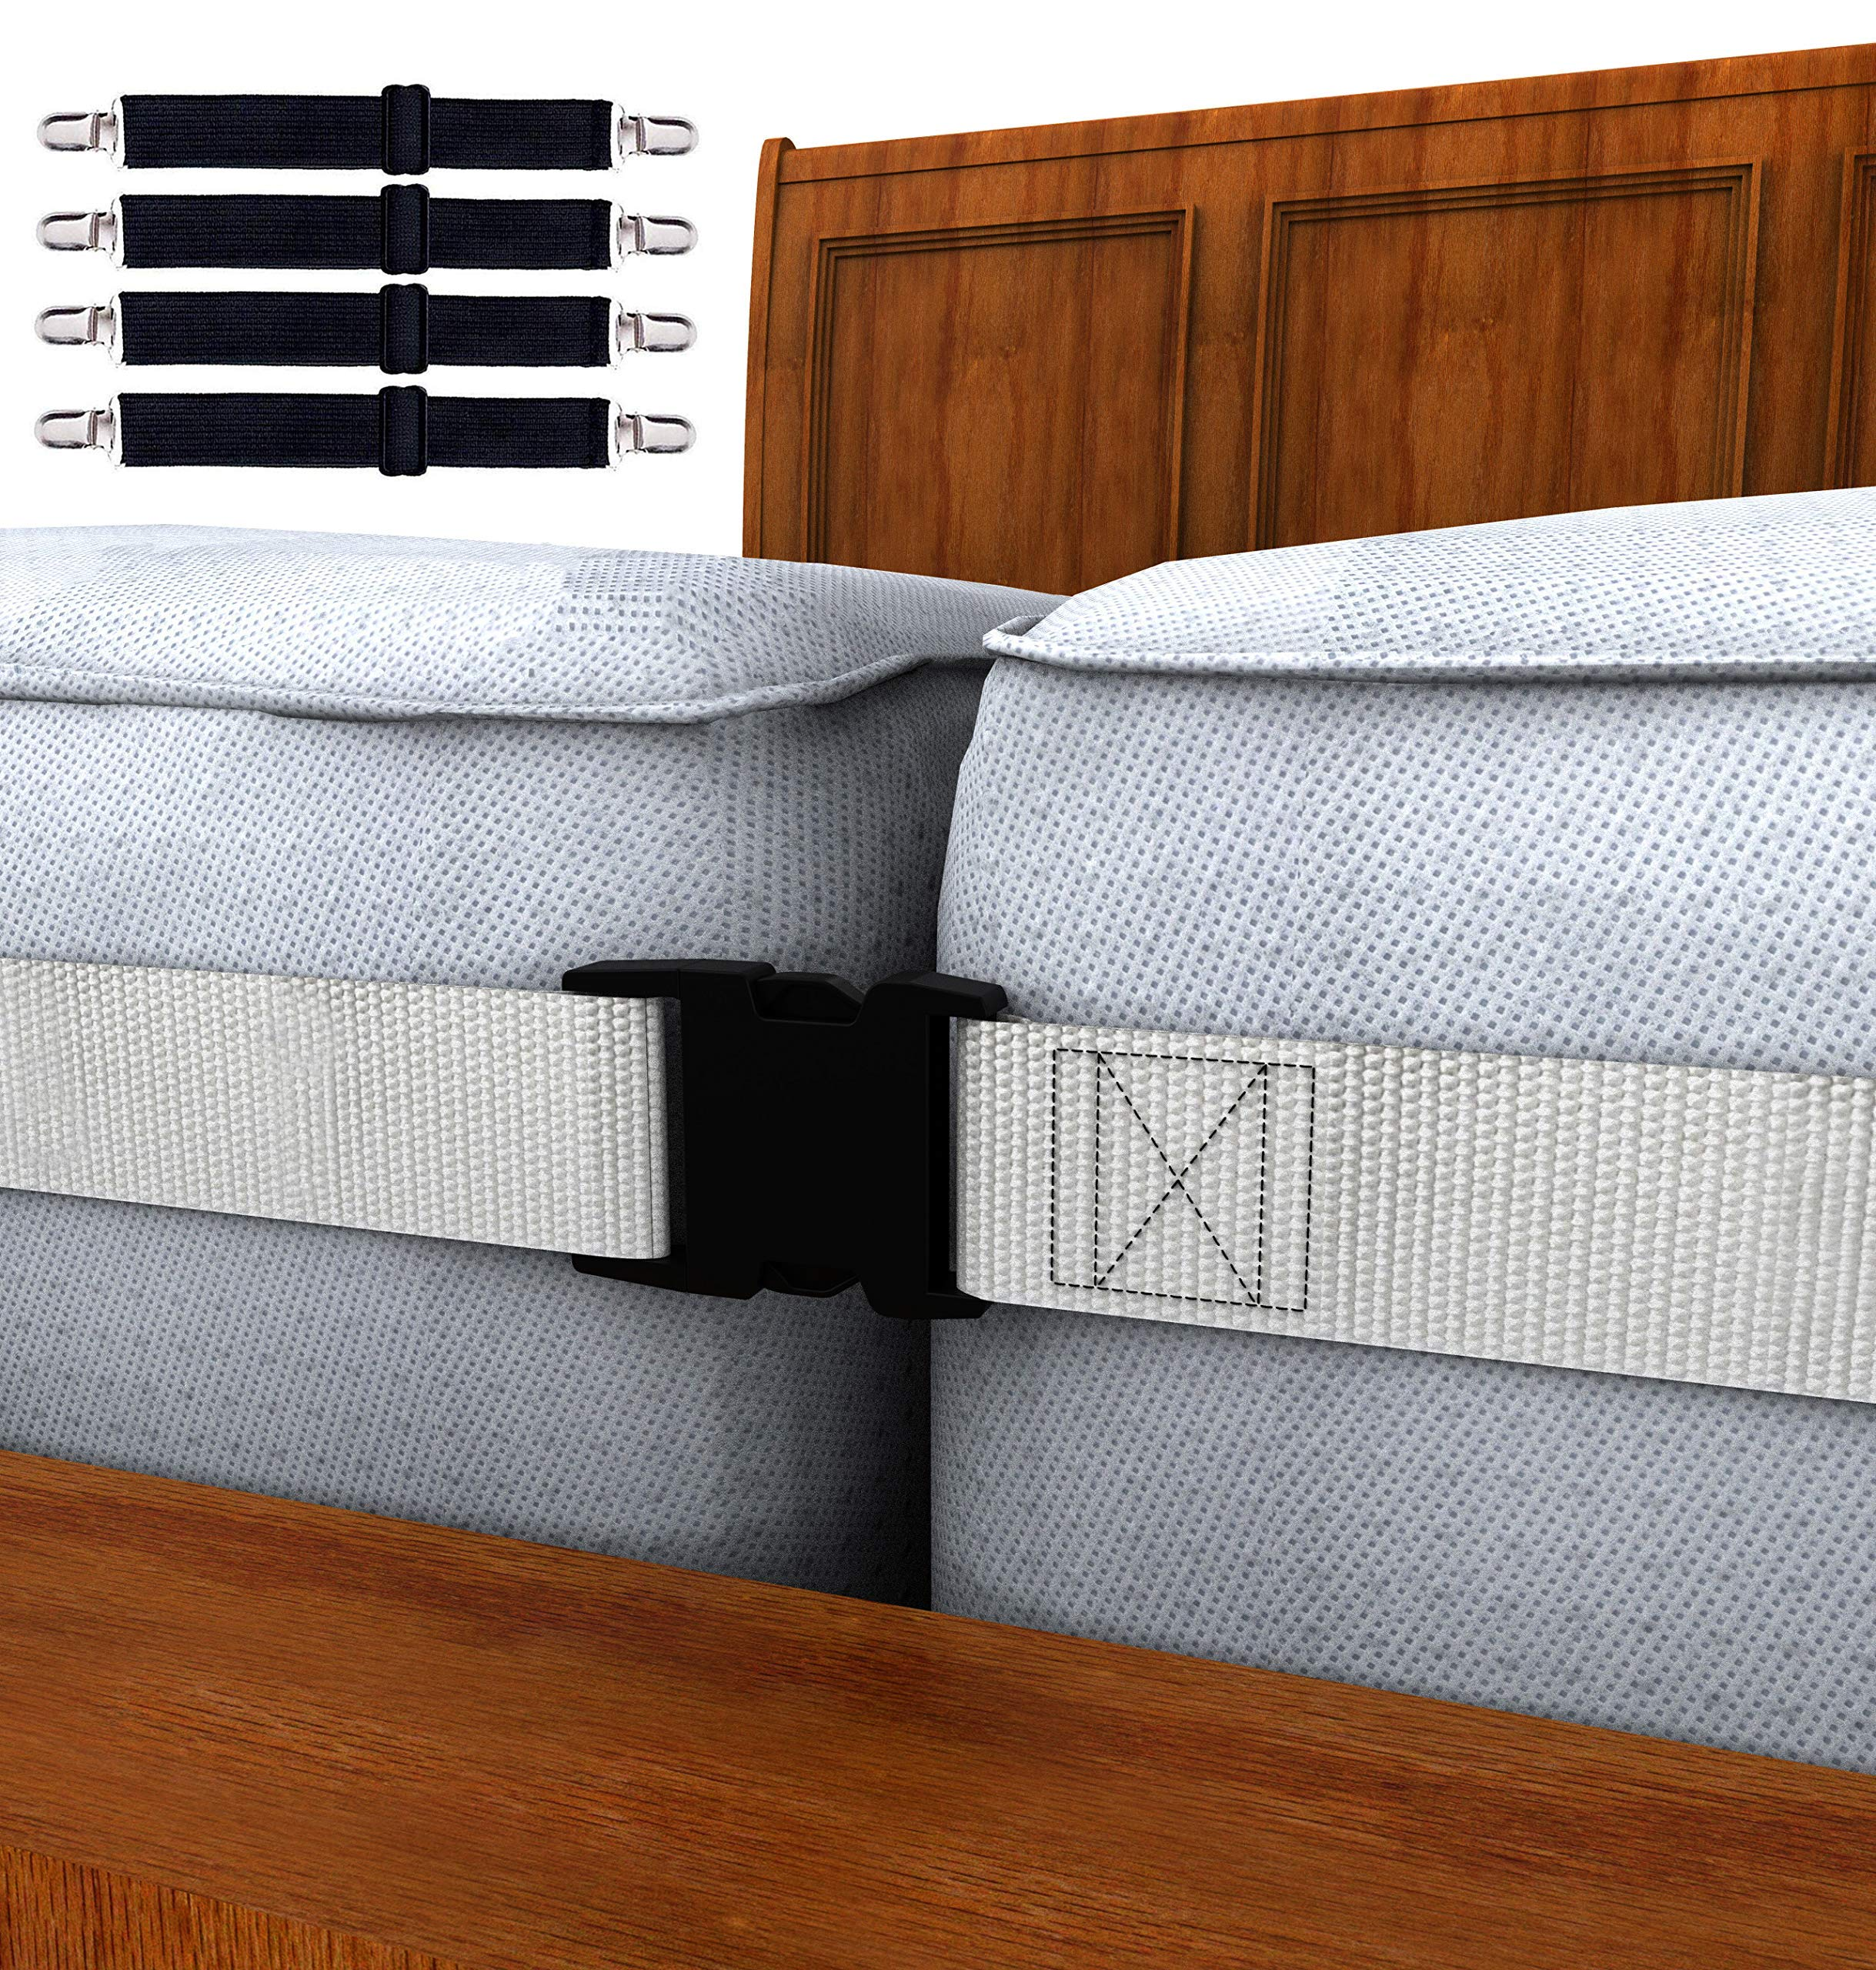 Twin to King Bed Strap Connector Kit - 2 Inch Wide Mattress Joiner Strap & 4 Adjustable Bed Sheet Fasteners -Perfect Solution to Hold in Place Twins Mattresses & Bed Sheets